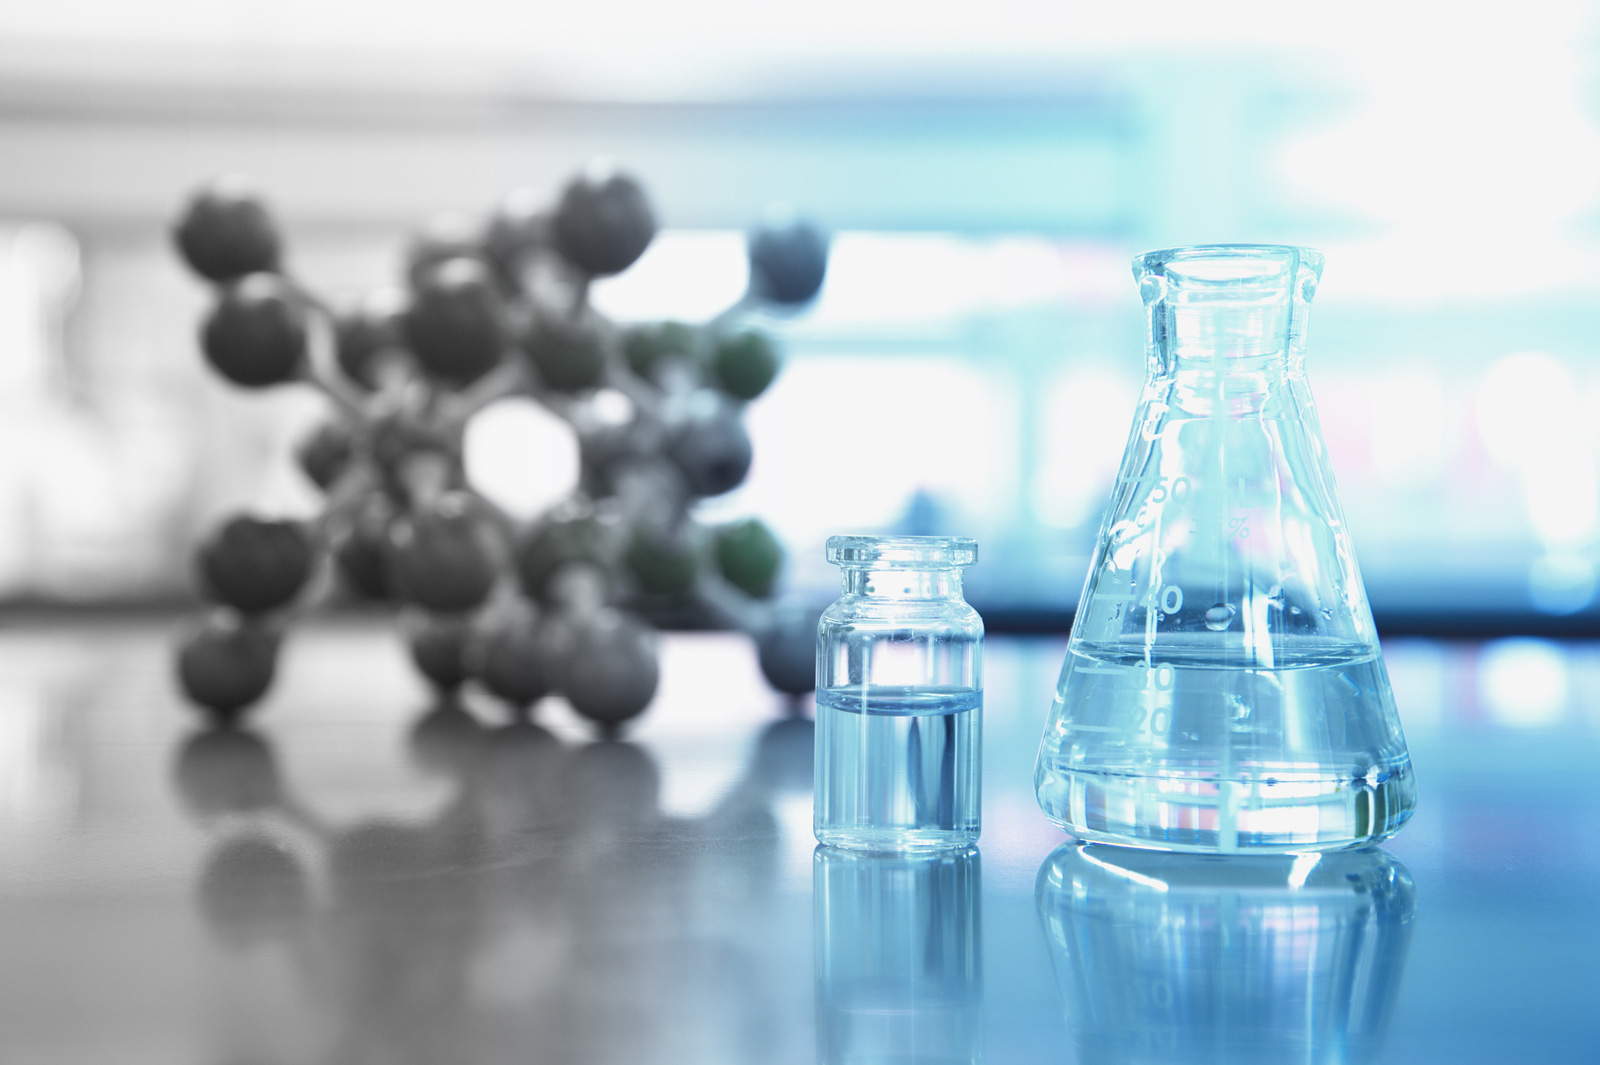 Ethylene  Market Insights, Trends & Growth Outlook